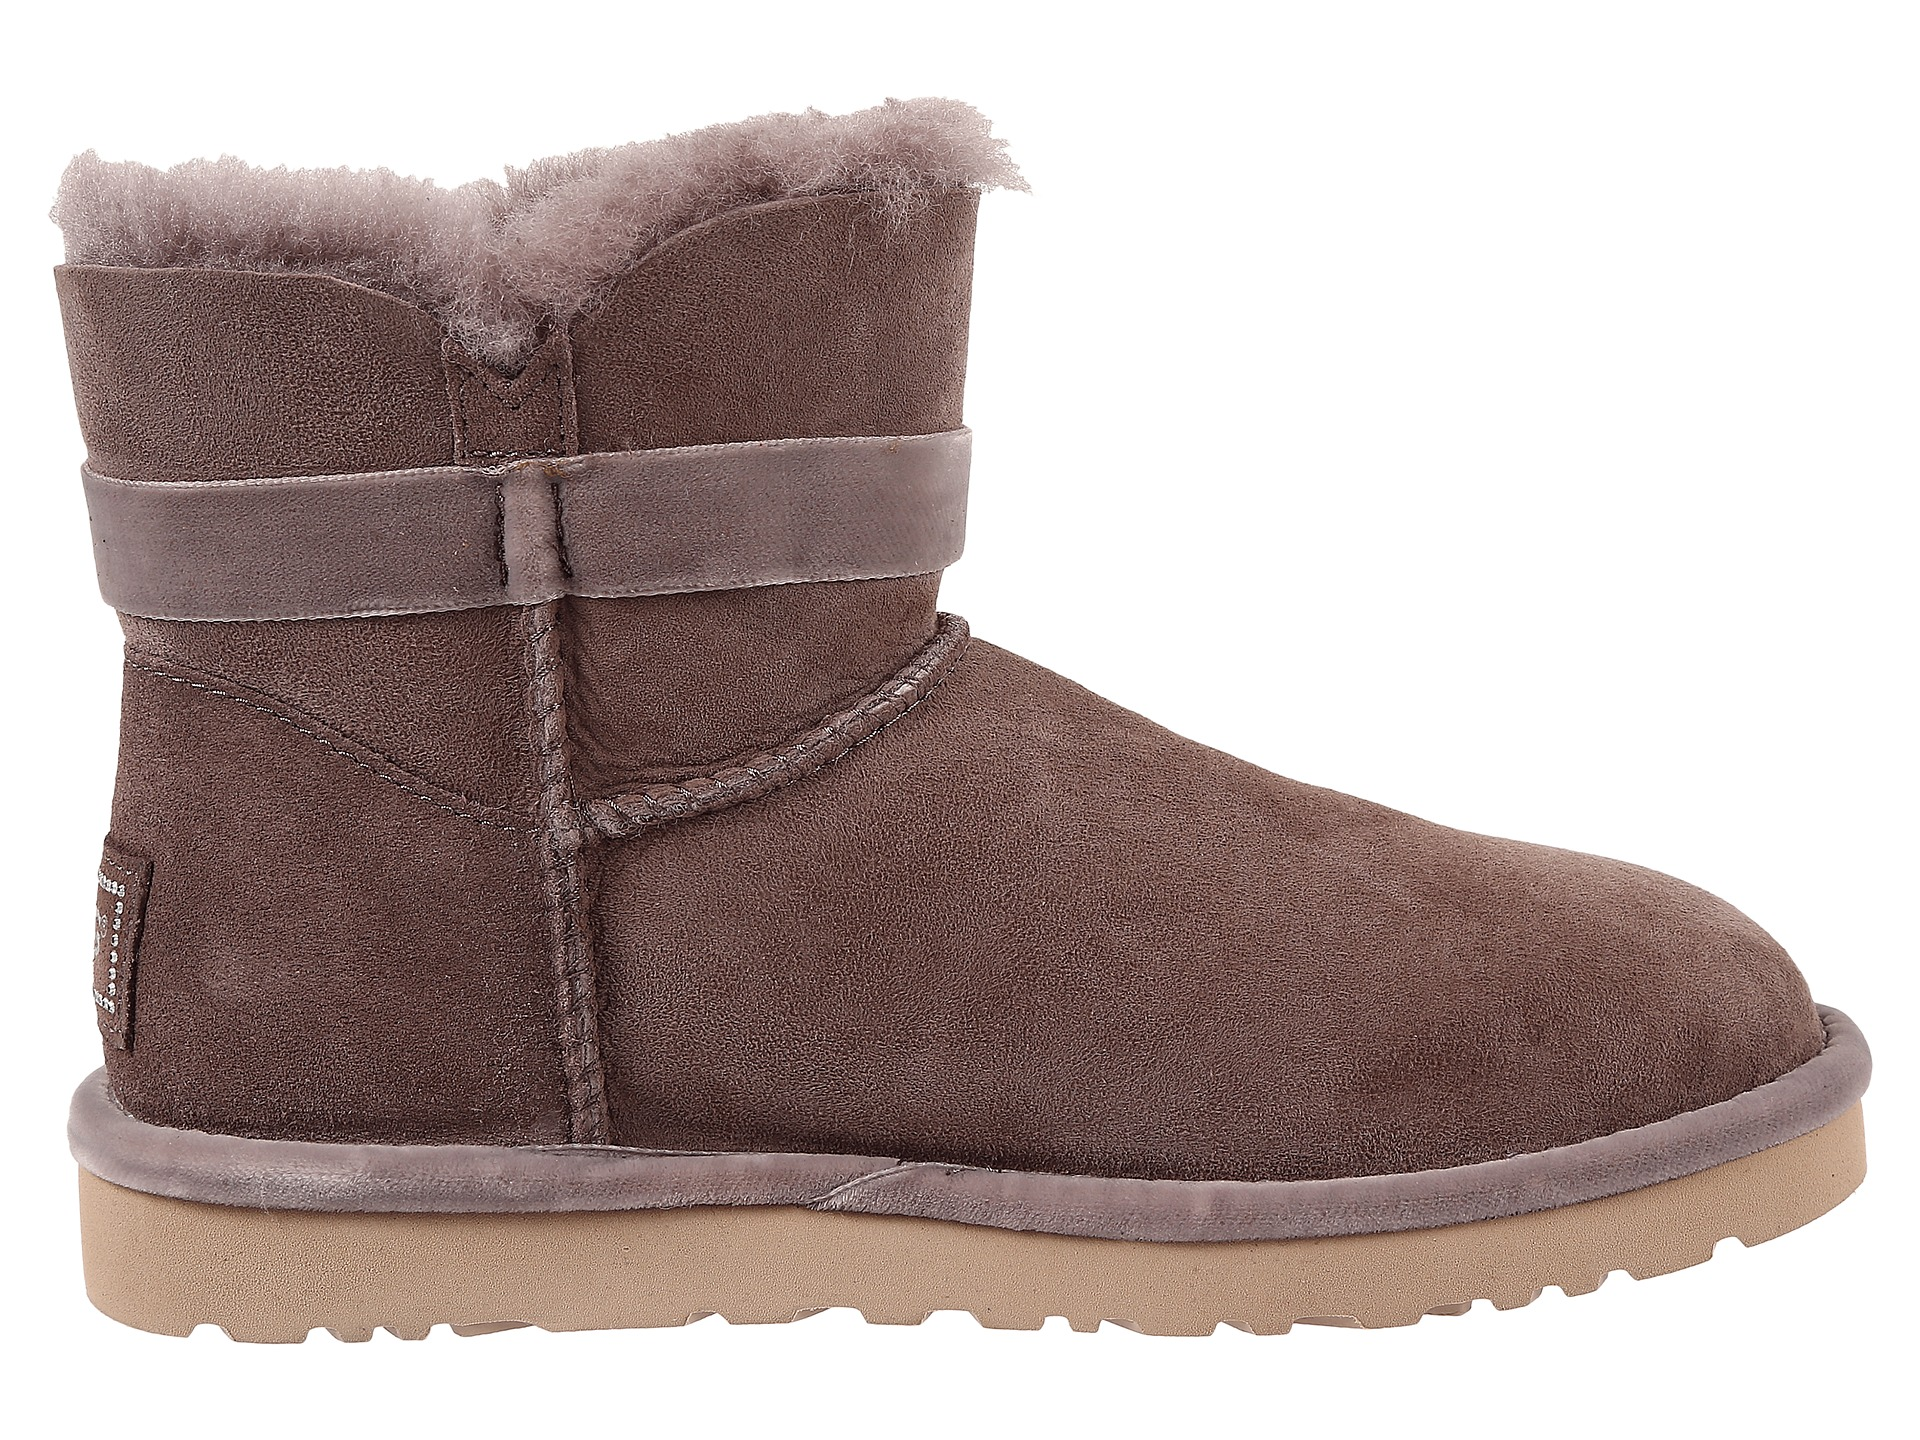 Ugg Boots Cleaner 28 Images Ugg Boot Cleaner Ugg Boot